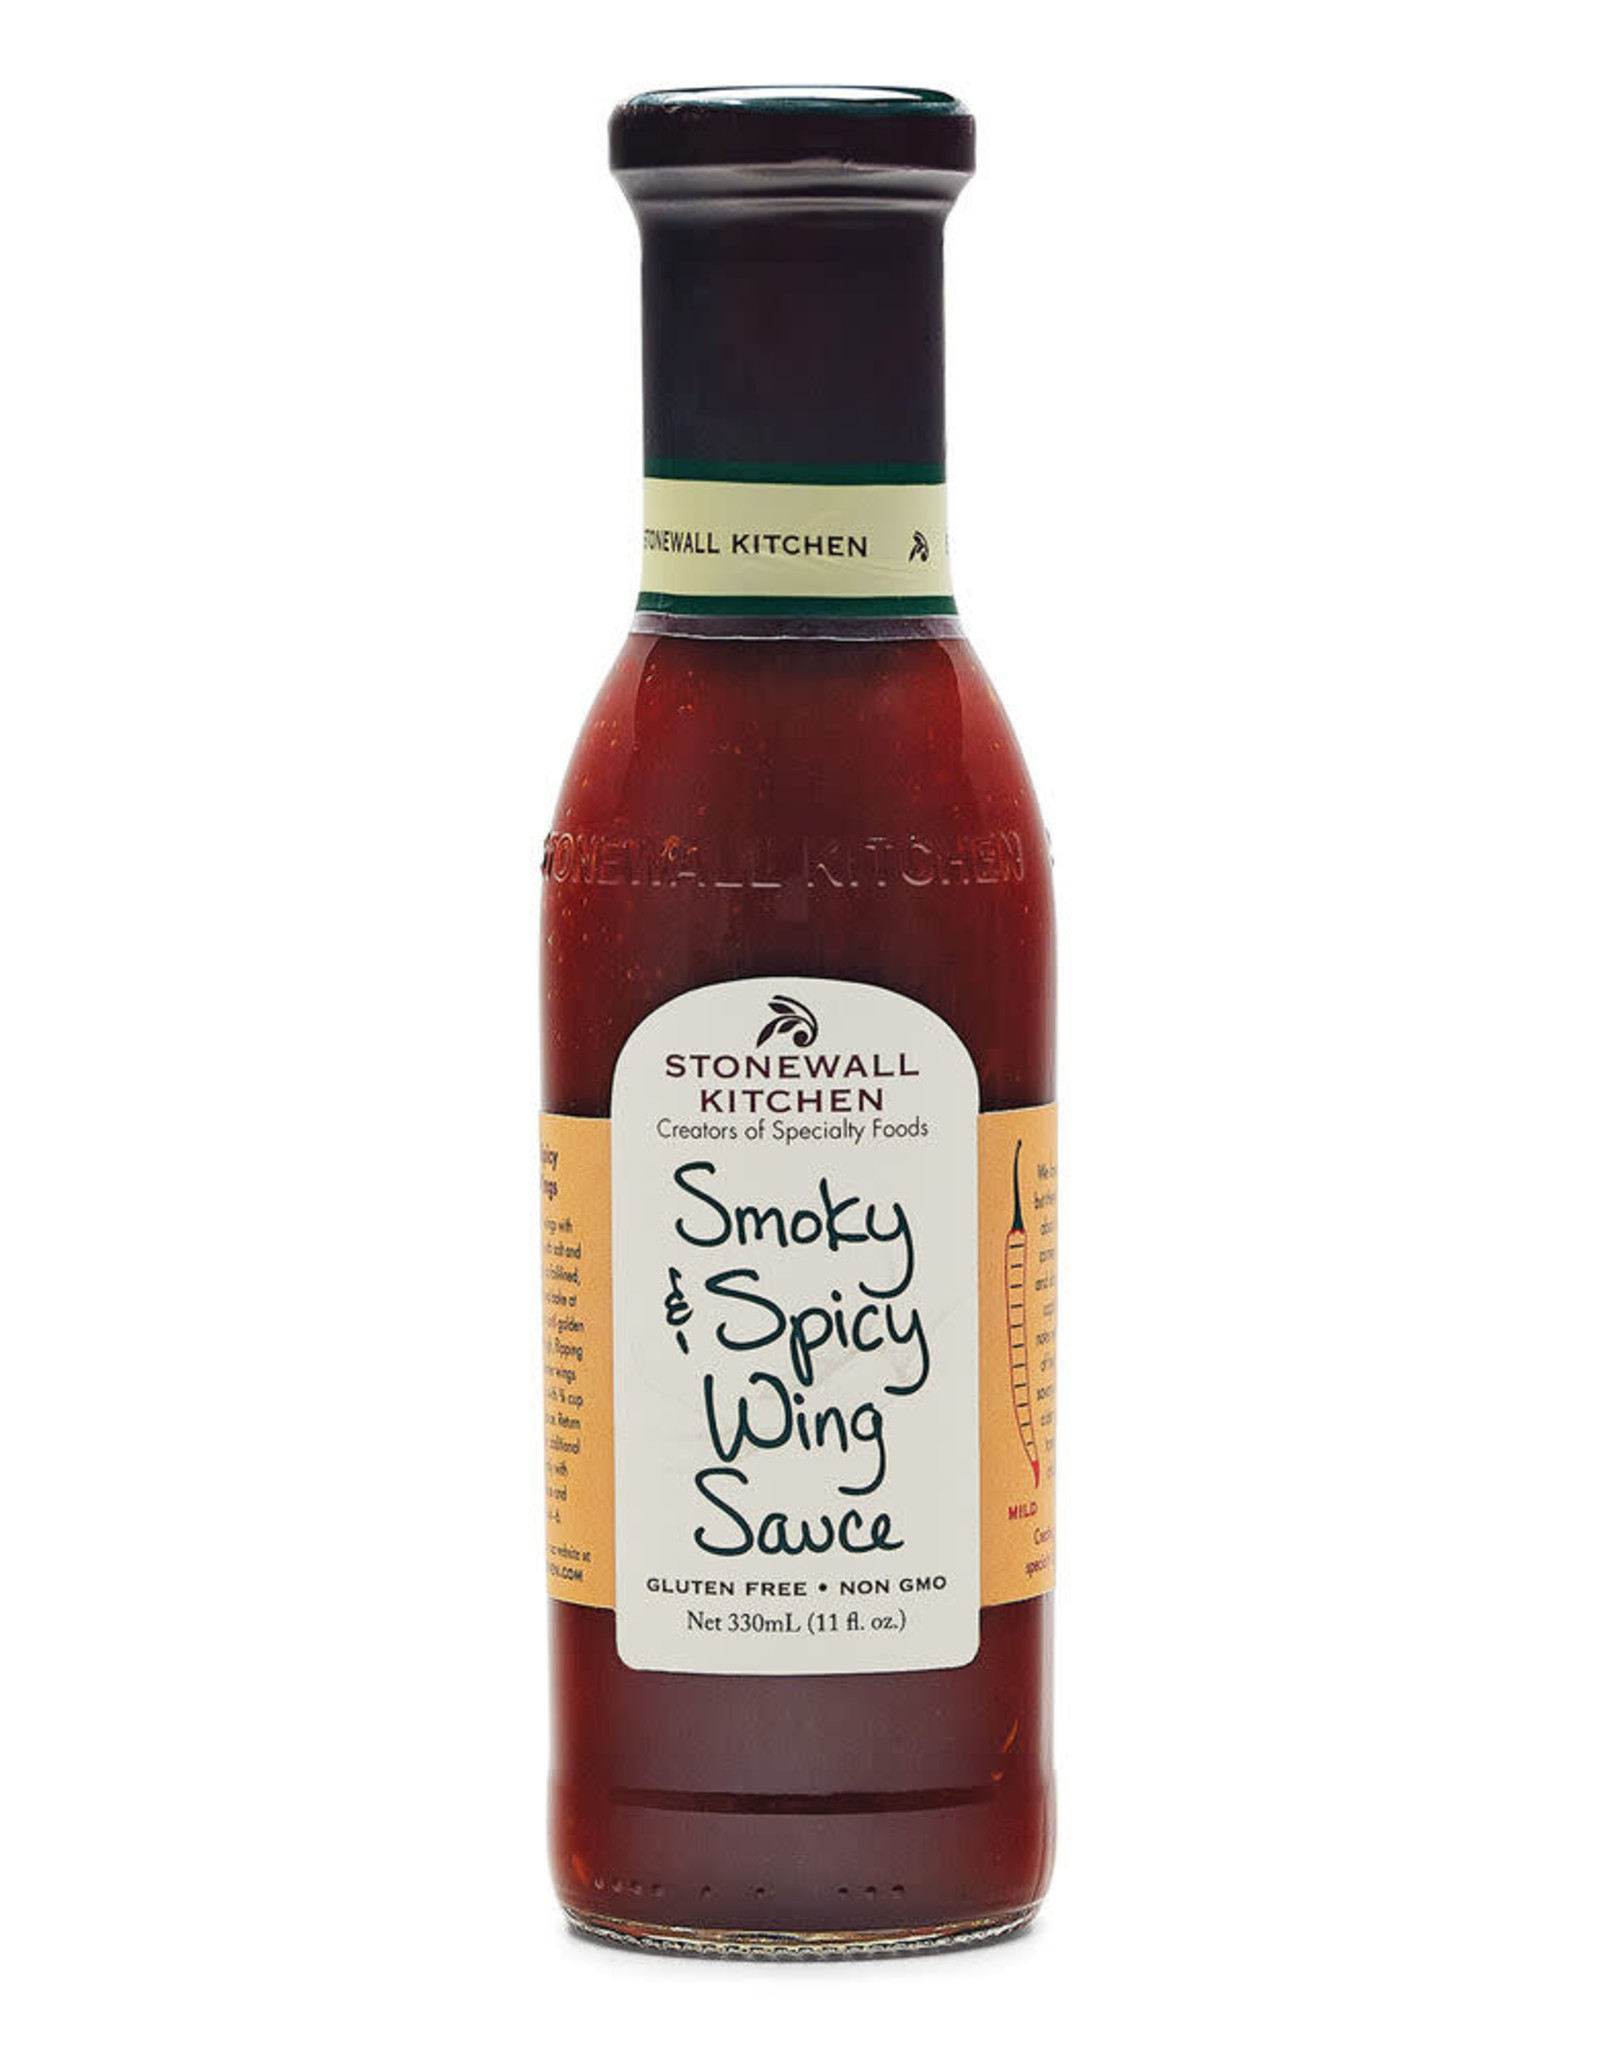 Stonewall Kitchen Smoky & Spicy Wing Sauce